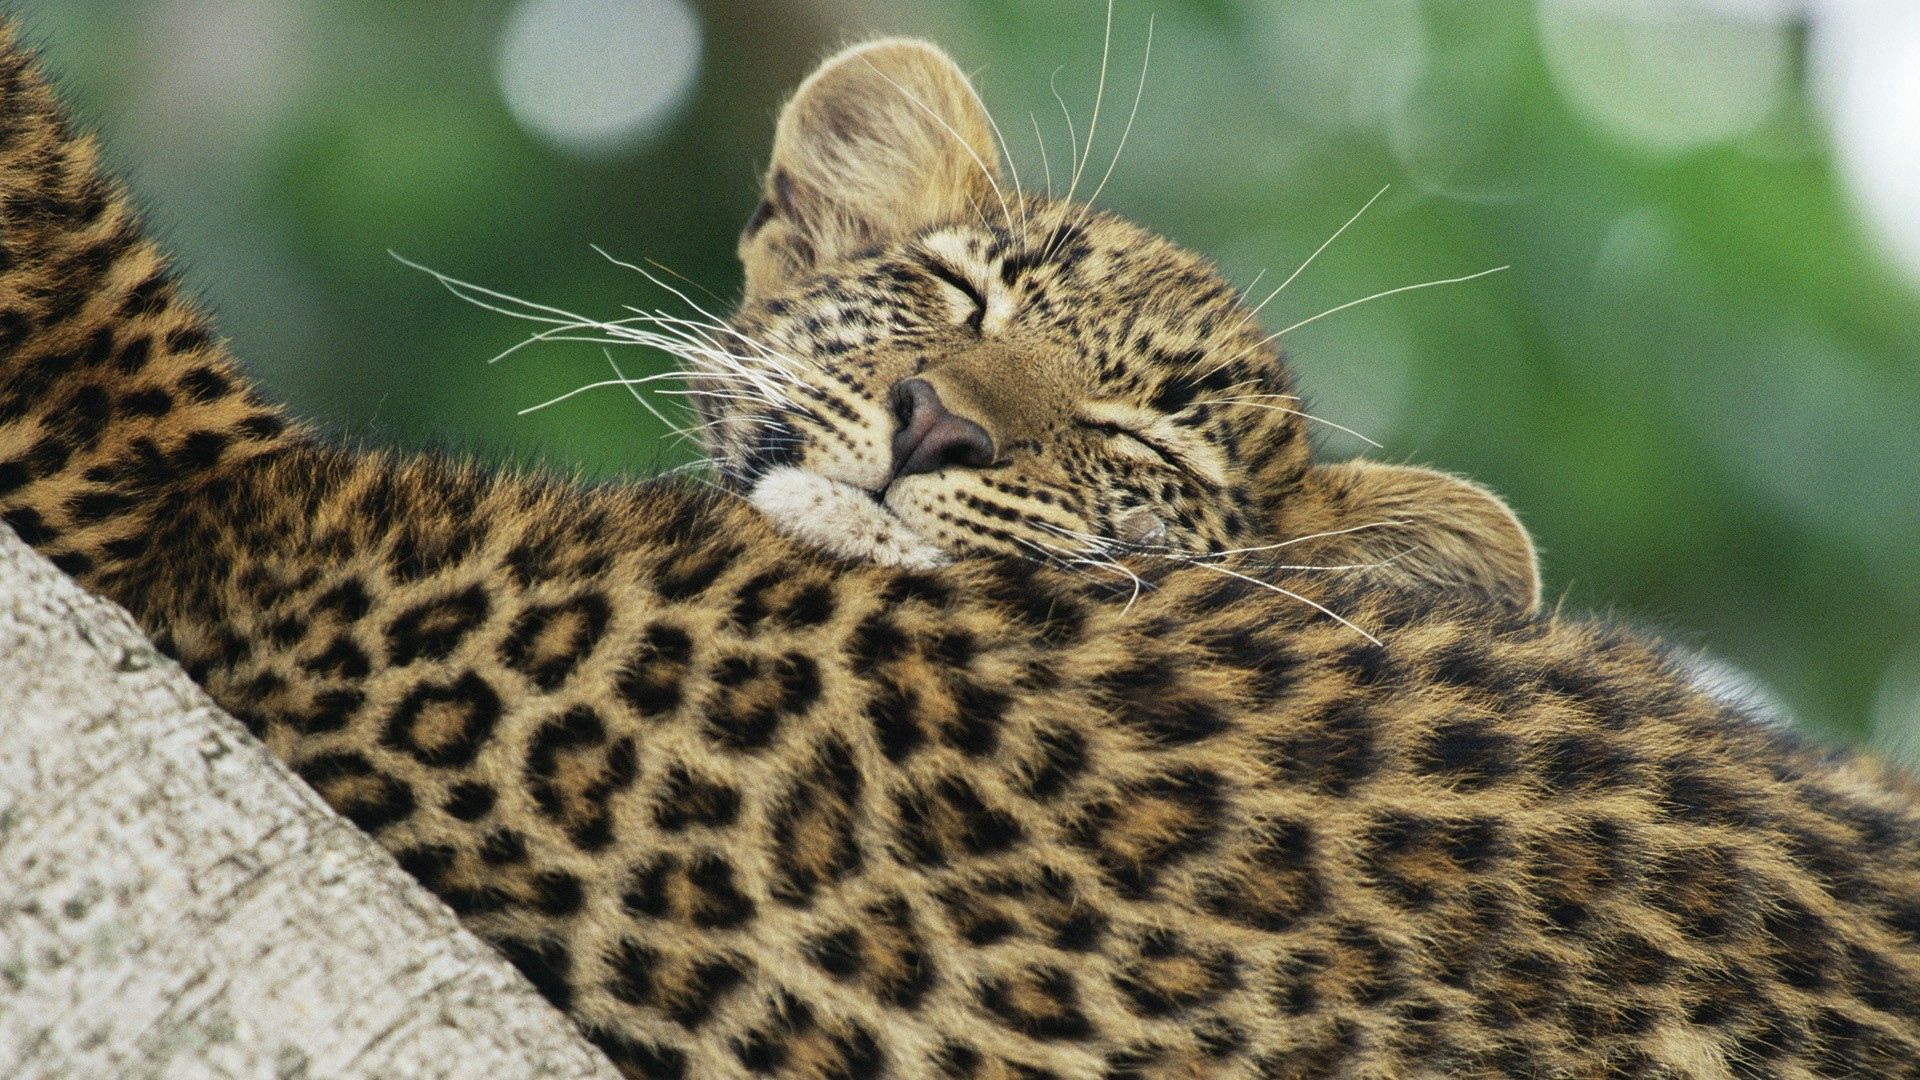 122994 download wallpaper Animals, Leopard, Color, Young, Joey, Care screensavers and pictures for free